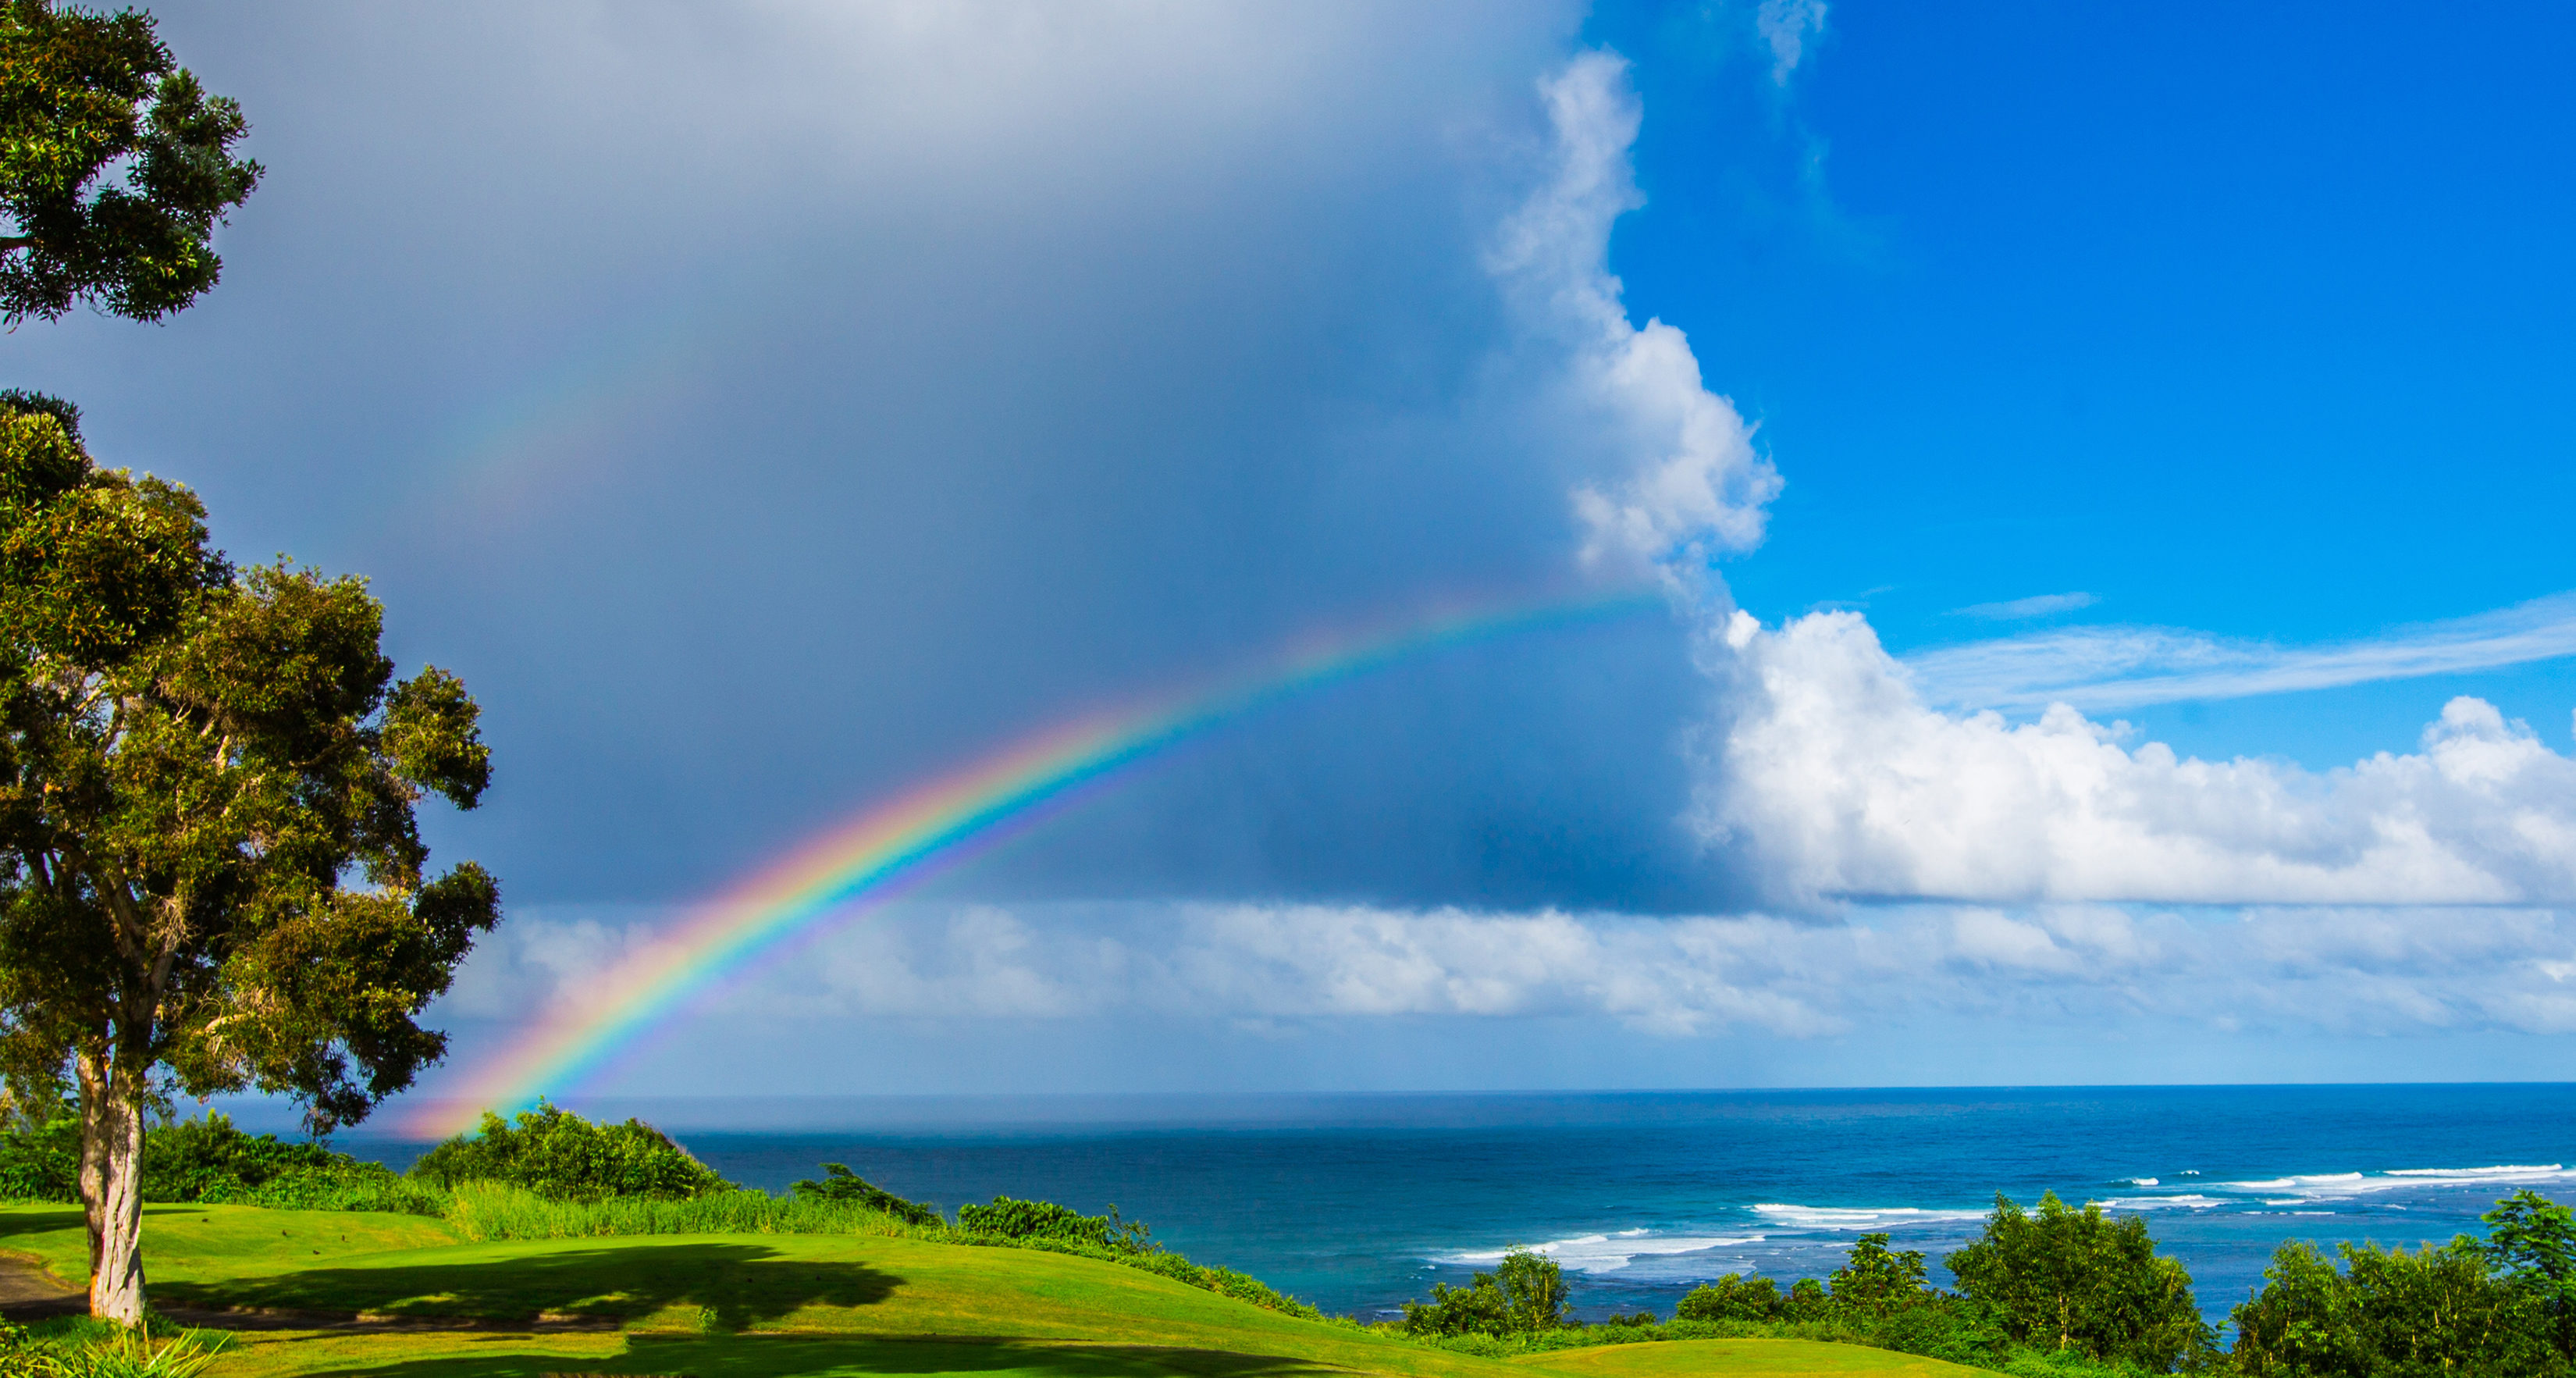 Princeville-Vacations Rainbow Over Princeville Golf-3300x1765-300dpi